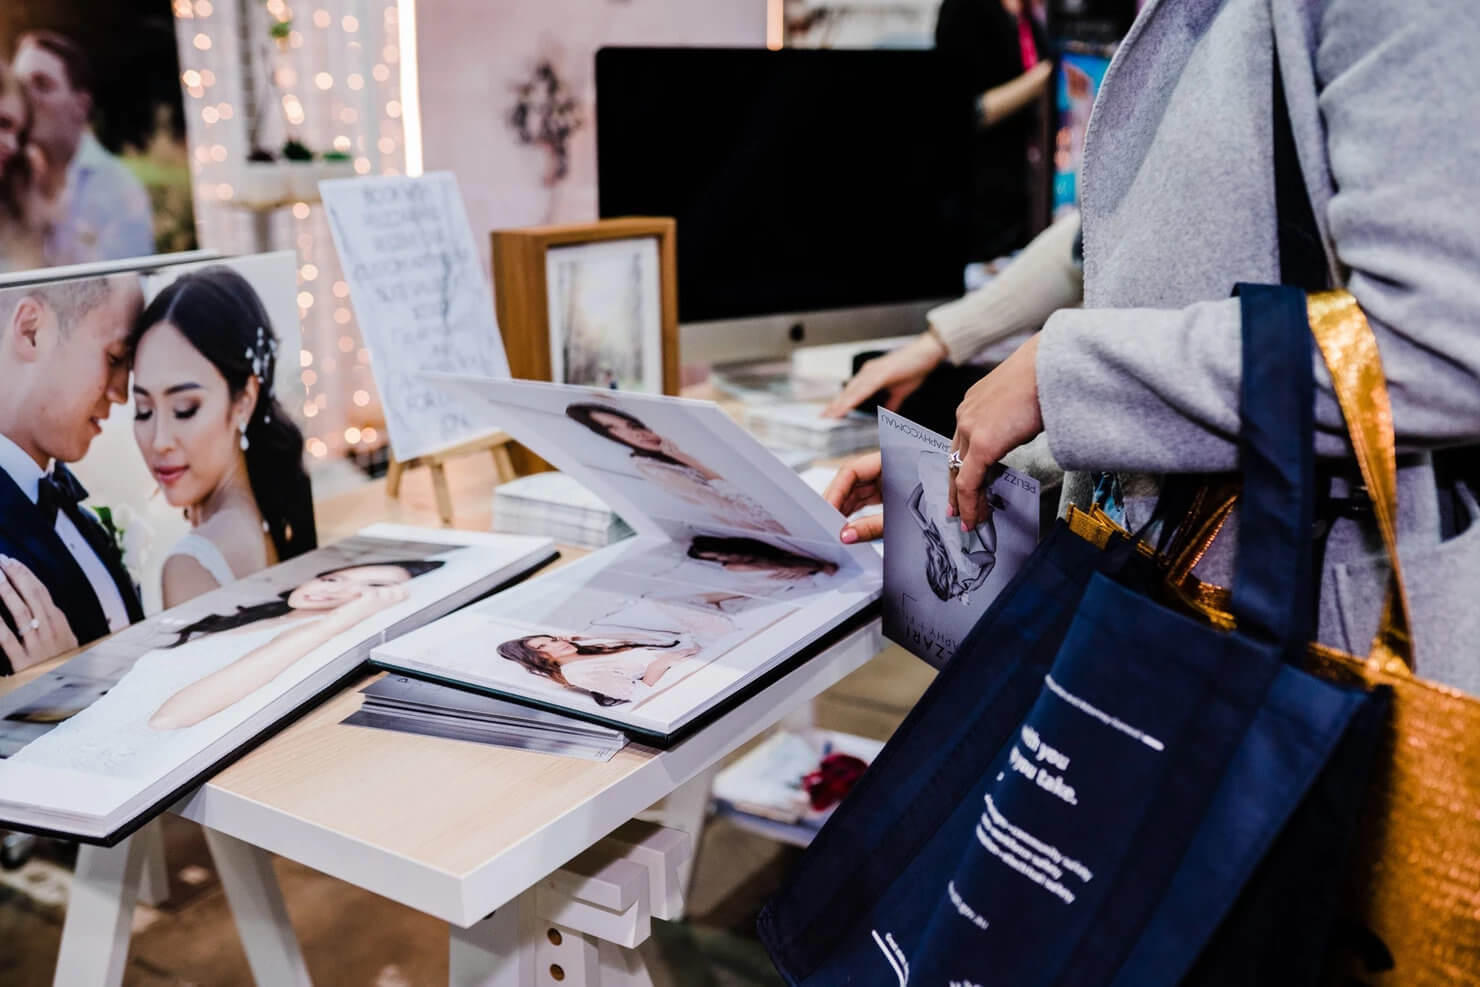 How to Get the Most Out of Your Next Wedding Expo Best Wedding Planning Tips 5